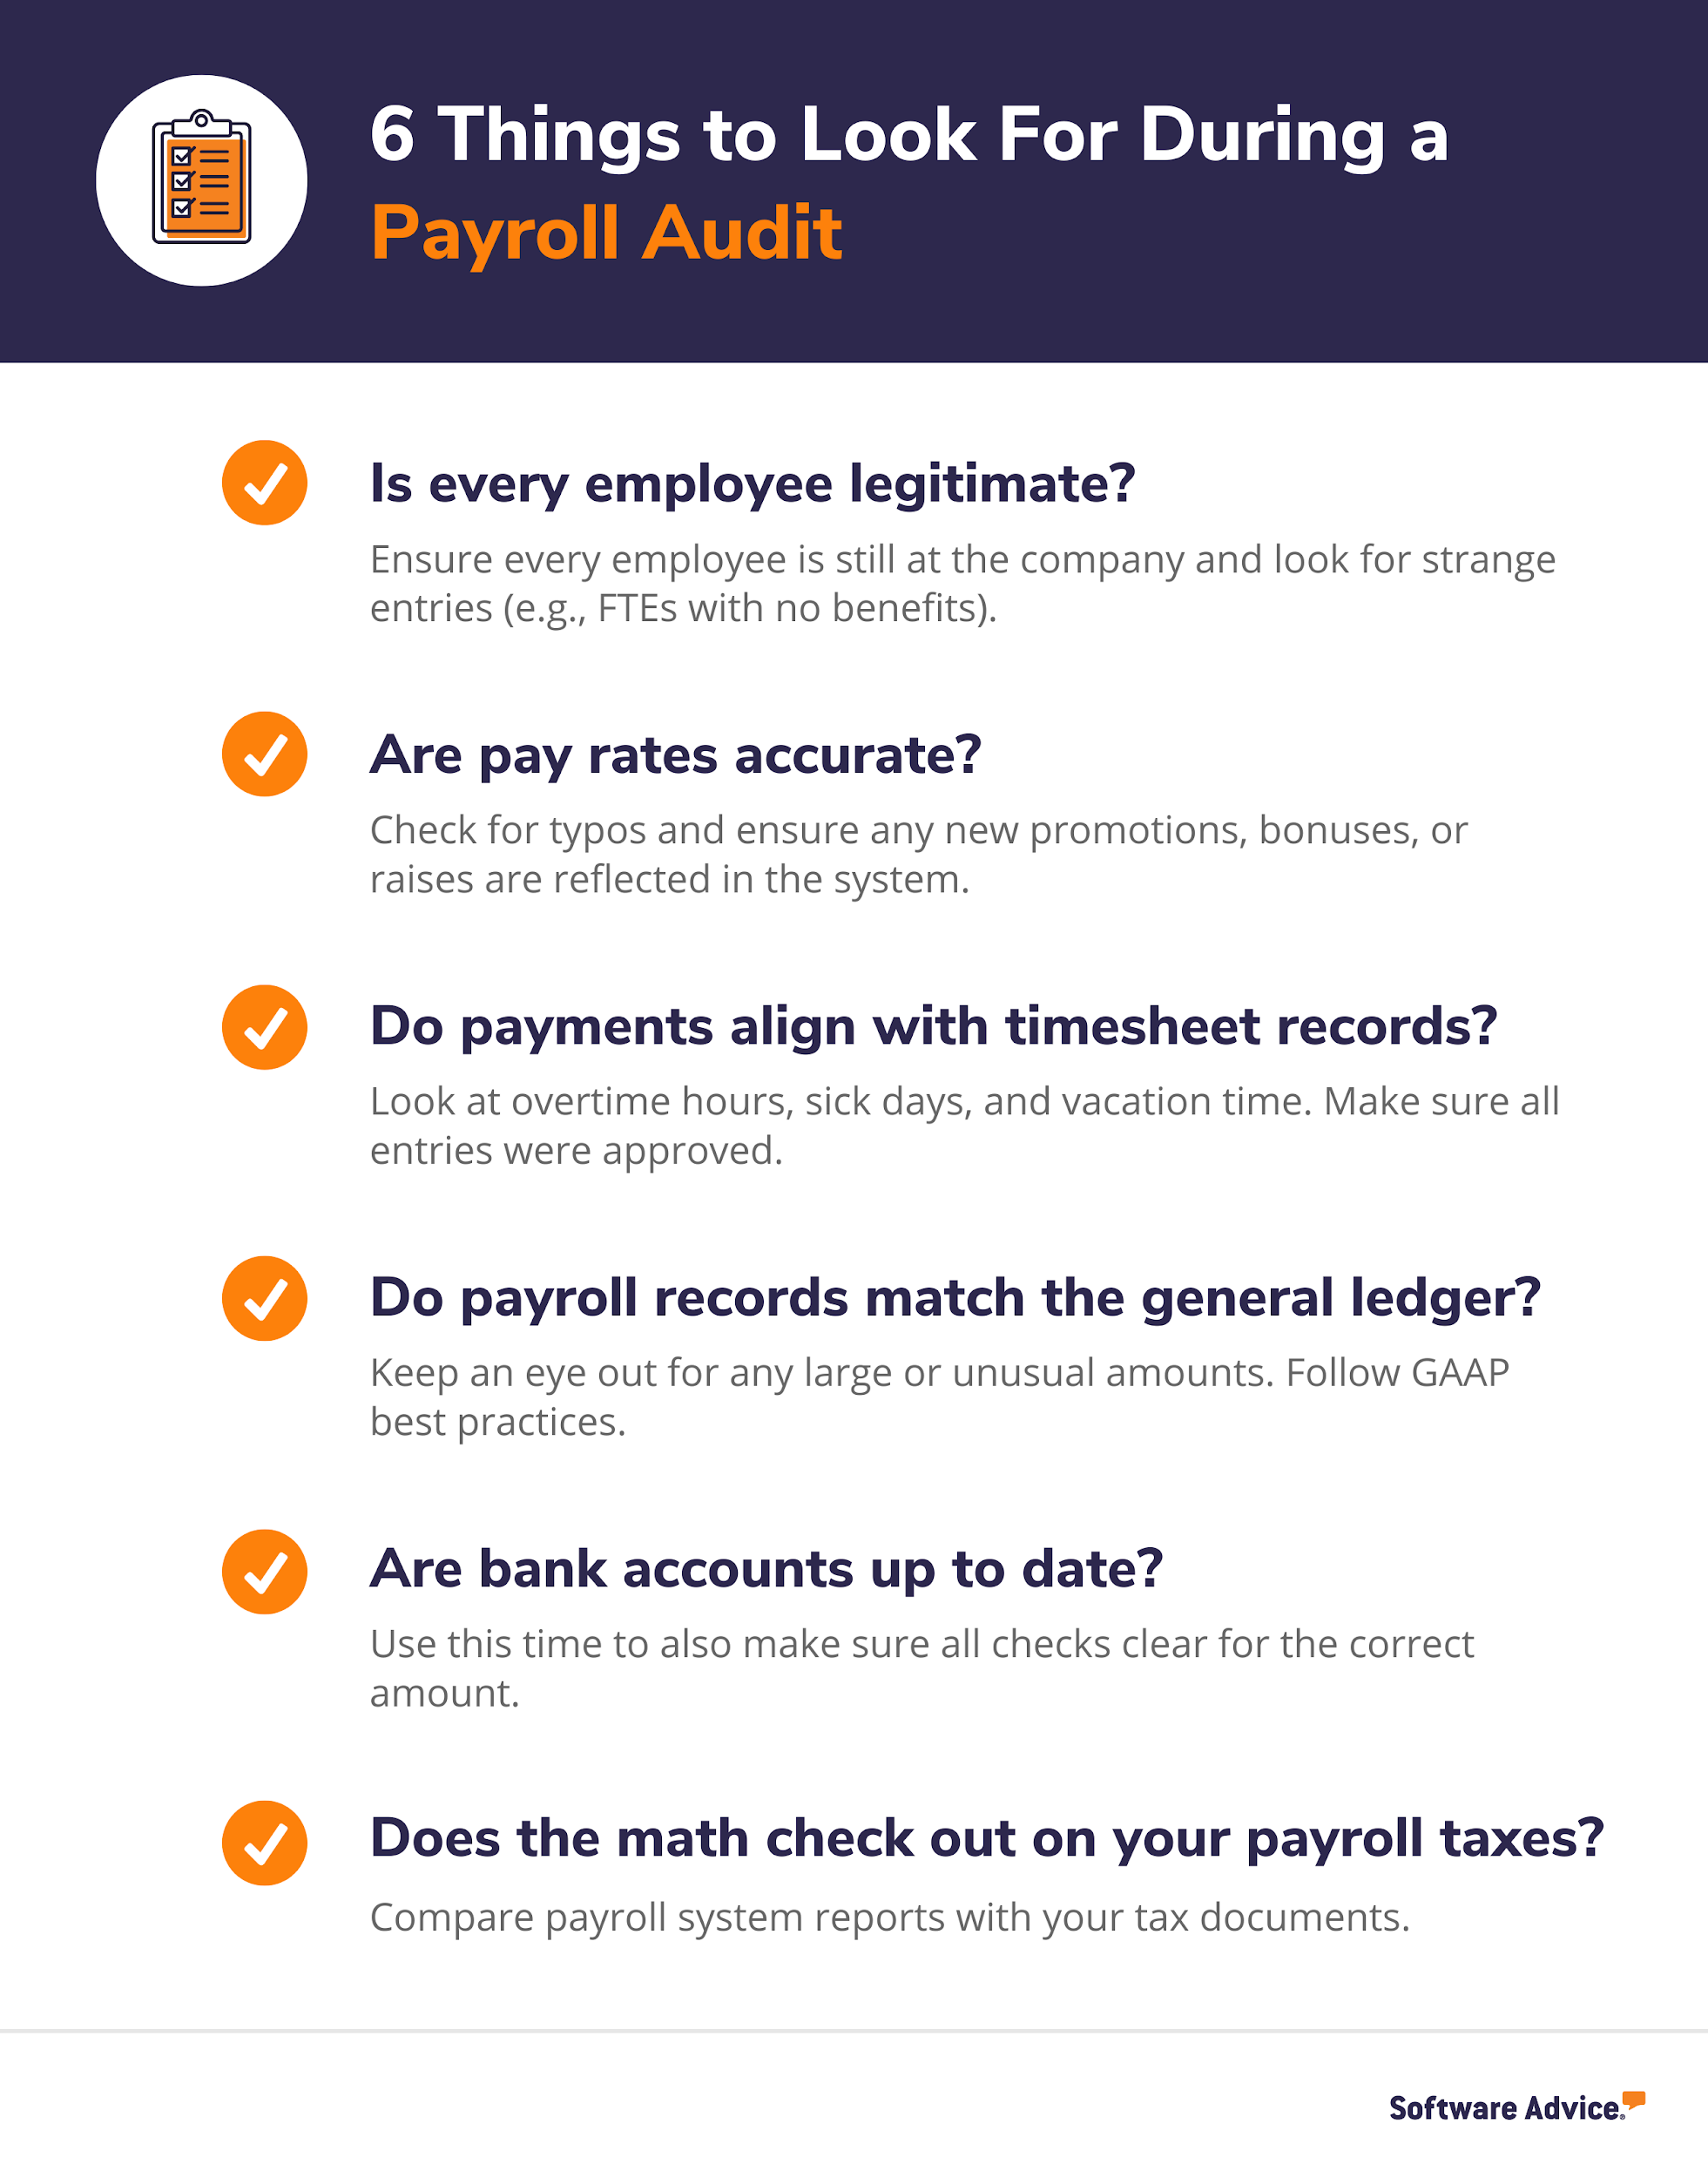 6 Things to Look For During a Payroll Audit